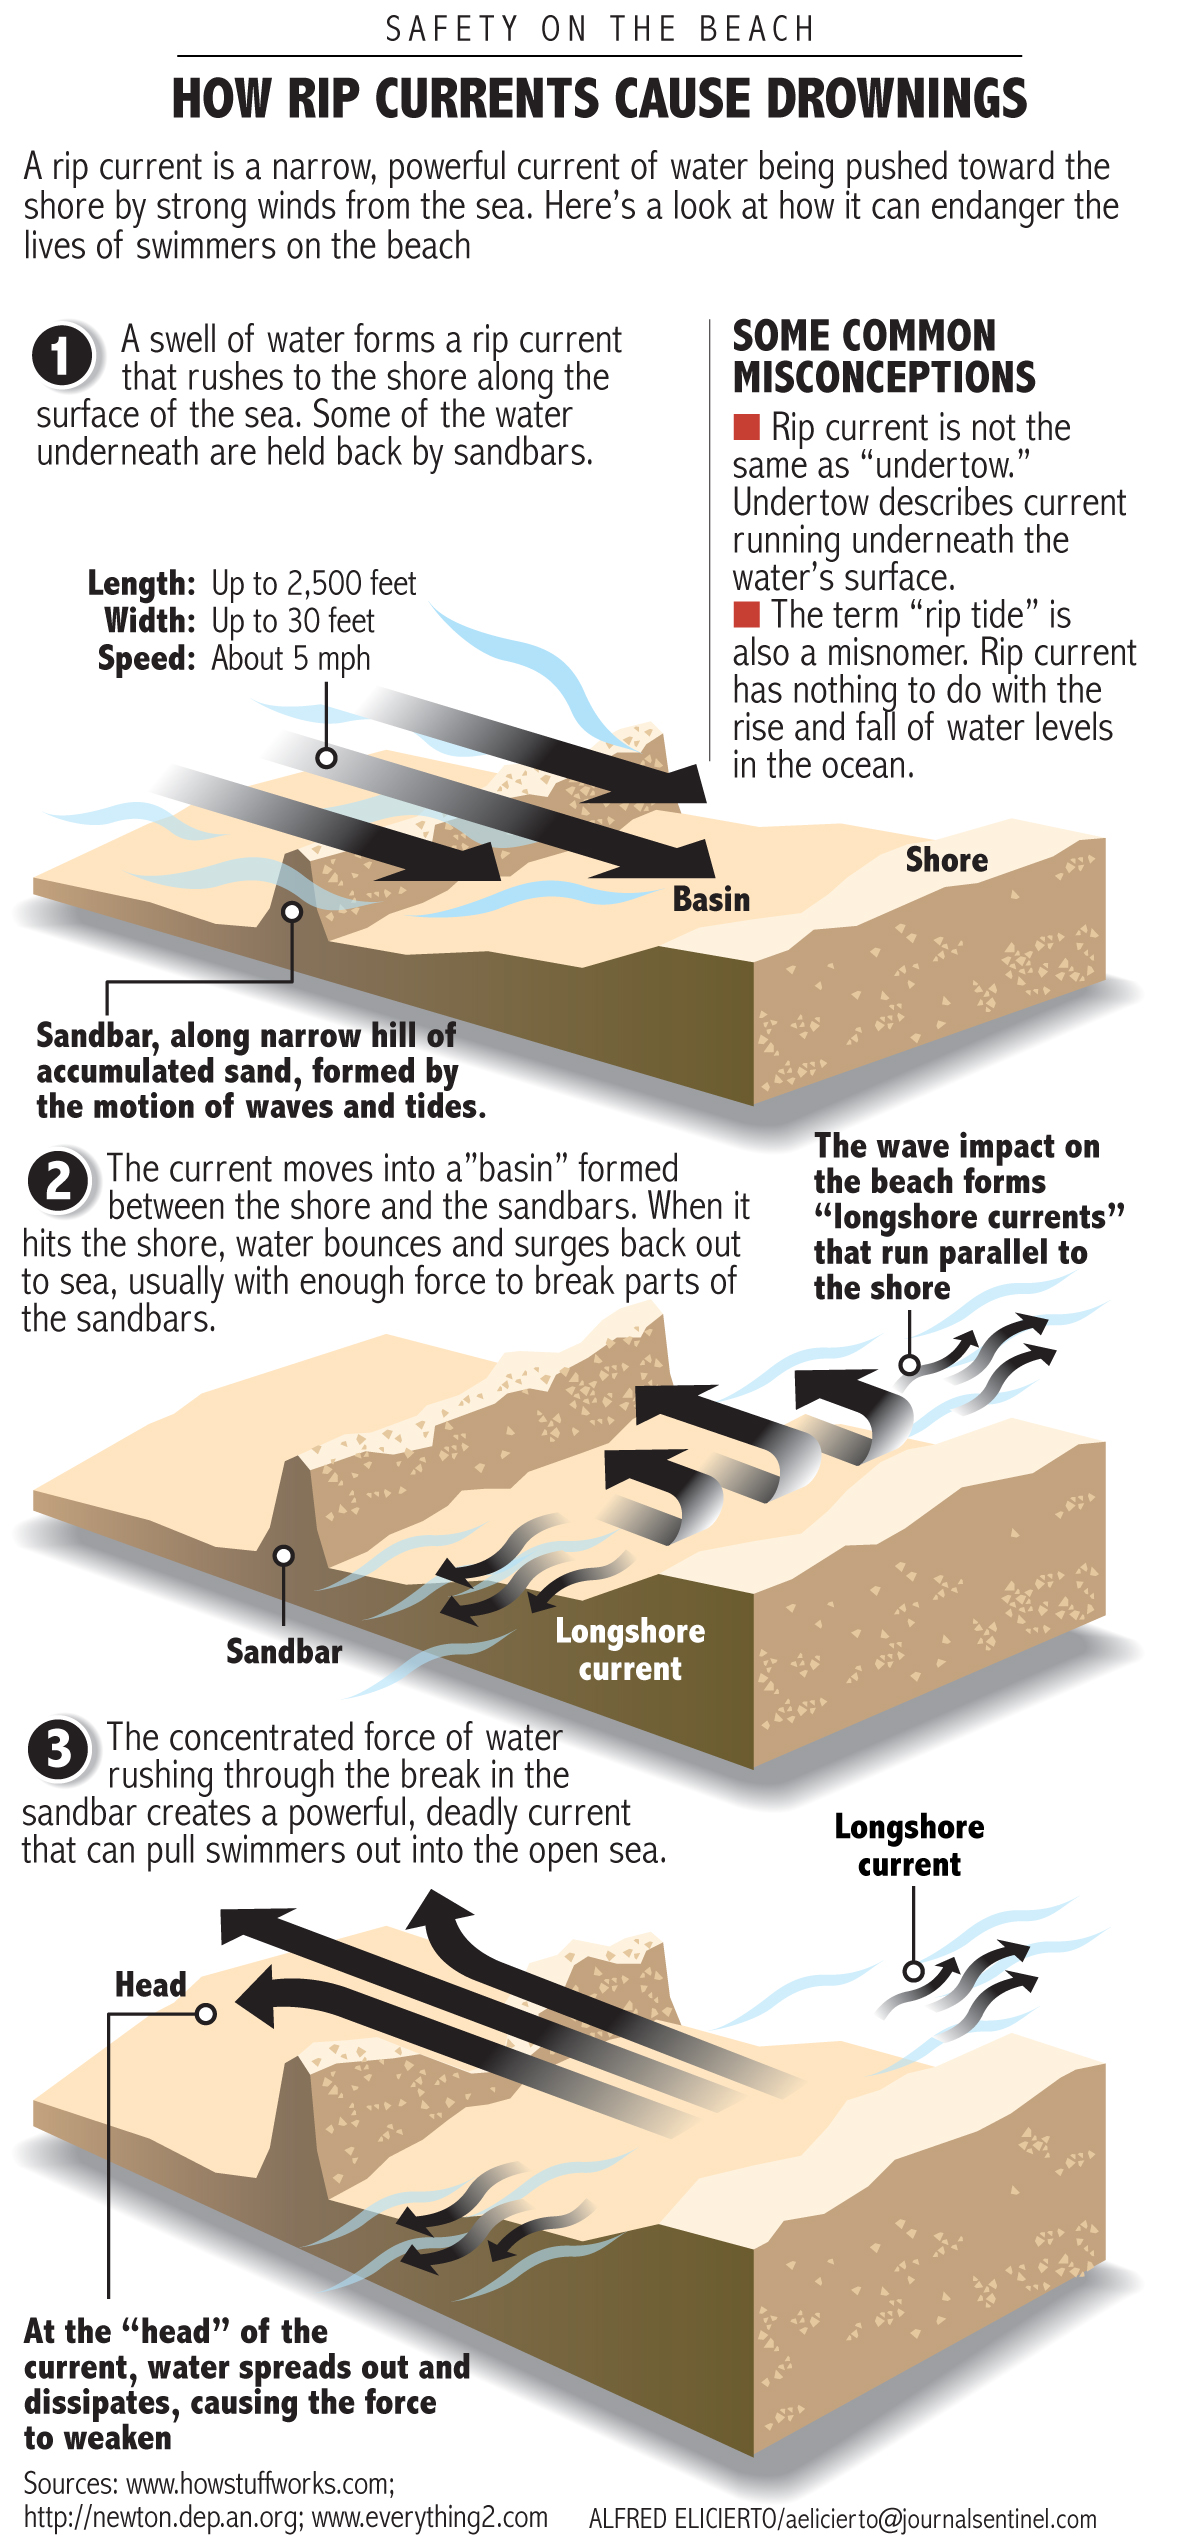 What Is RIP Current A Rip Narrow Powerful Of Water Being Pushed Toward The Shore By Strong Winds From Sea Heres Look At How